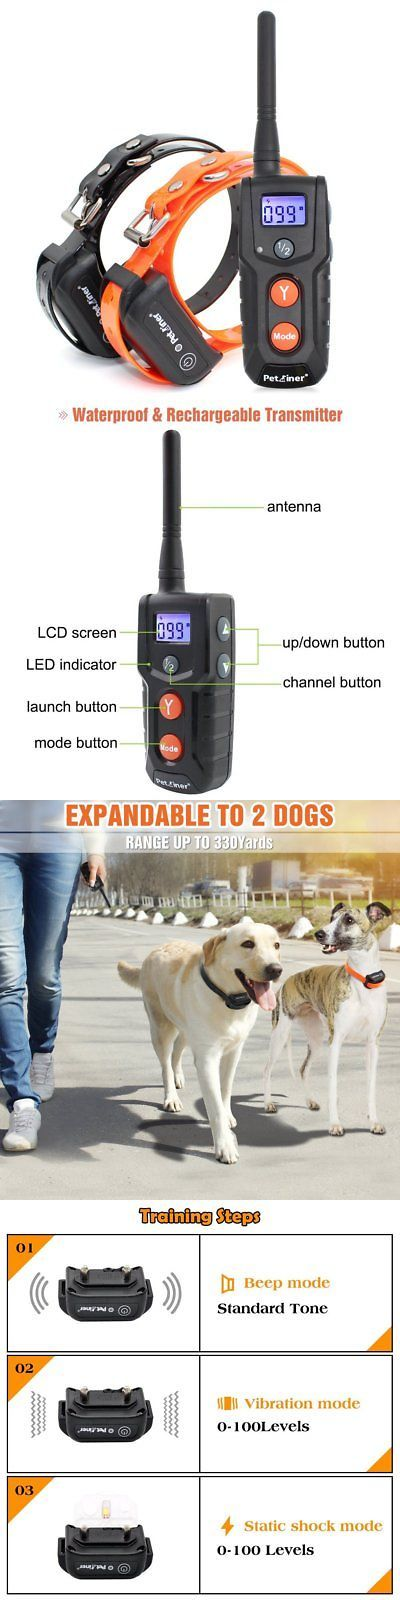 Animals Dog: Petrainer Pet916-2 Dog 100% Waterproof Rechargeable Dog Shock Collar For 2 Dogs -> BUY IT NOW ONLY: $56.35 on eBay!